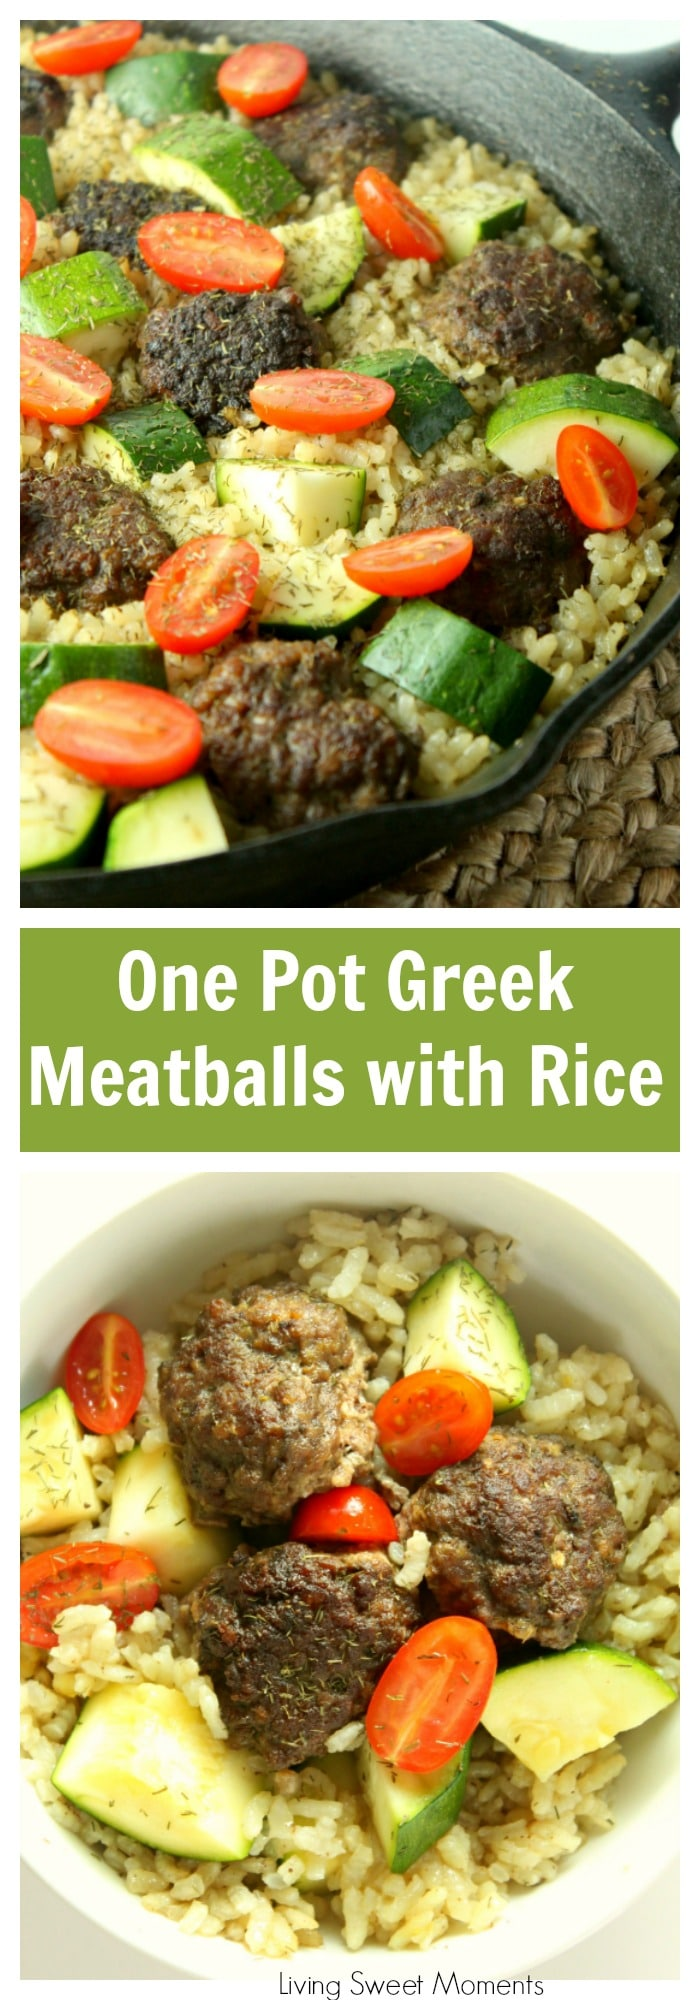 Enjoy a full meal from scratch on the table in 45 minutes or less using only one pan! This delicious One Pot Greek Meatballs is super easy to make, family friendly, and it cooks alongside a fluffy lemon dill rice. Visit Livingsweetmoments.com for more one pot meals